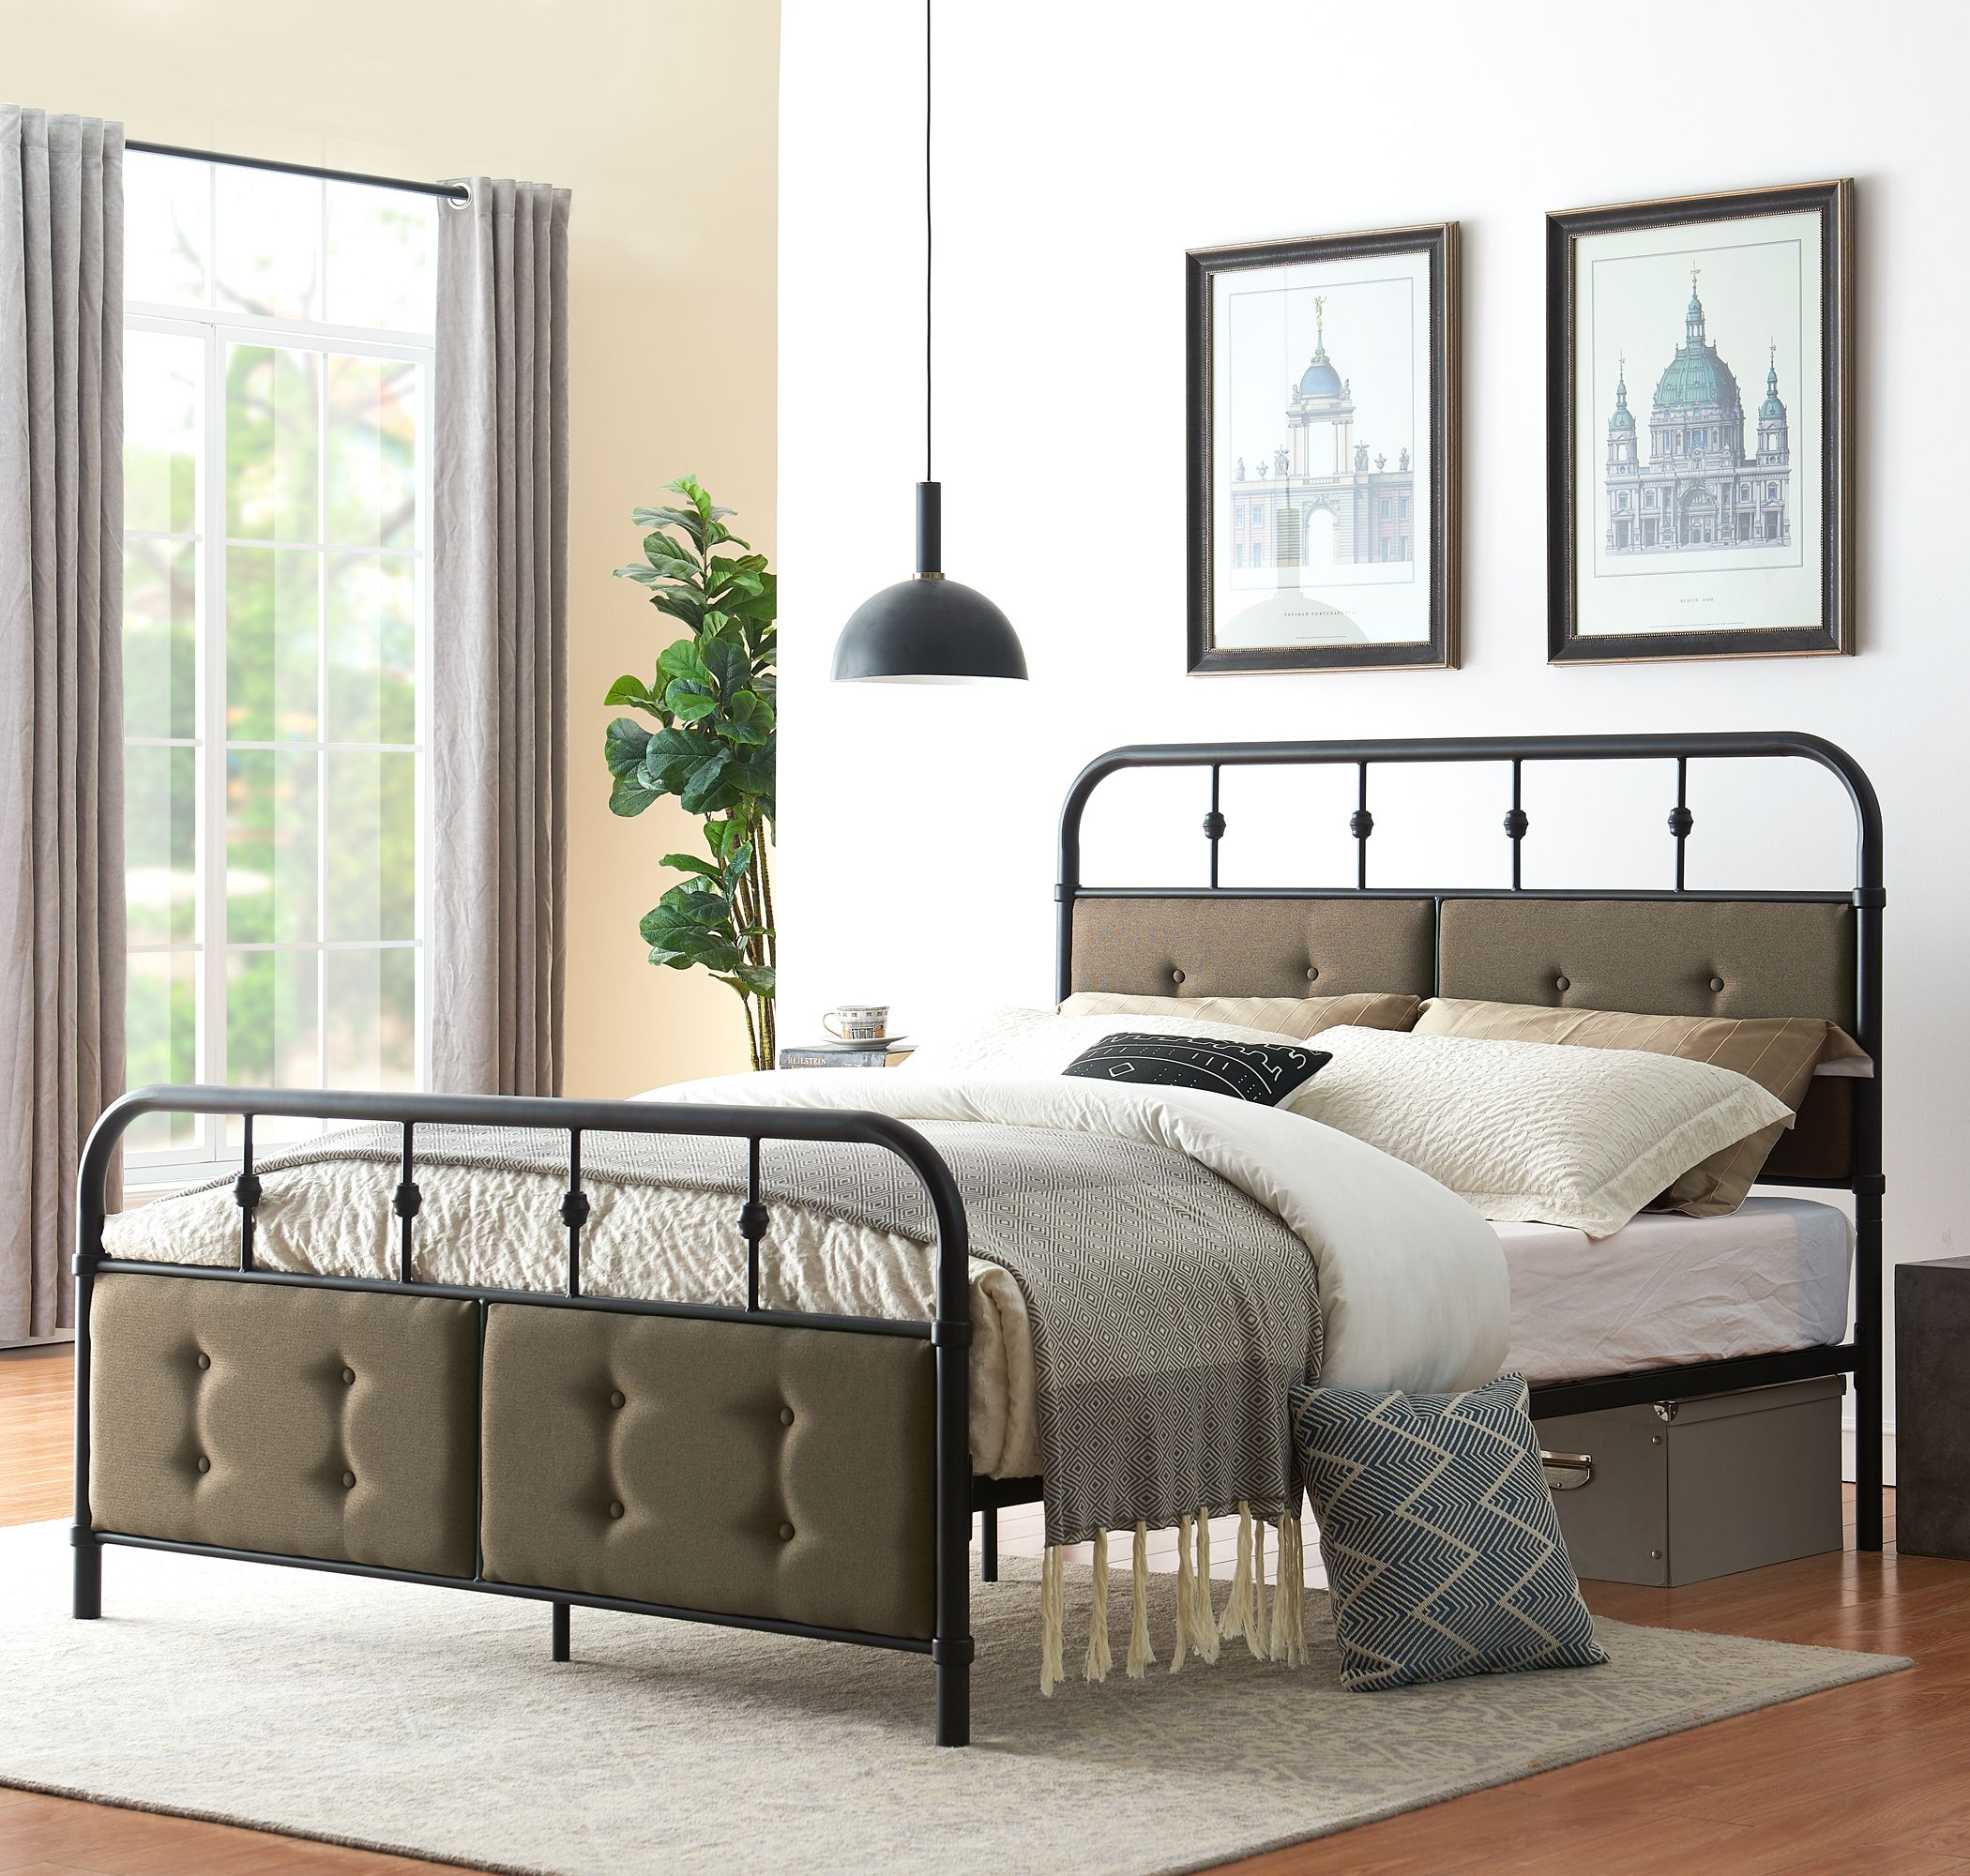 Metal Platform Bed Frame Full Queen Size With Vintage Headboard